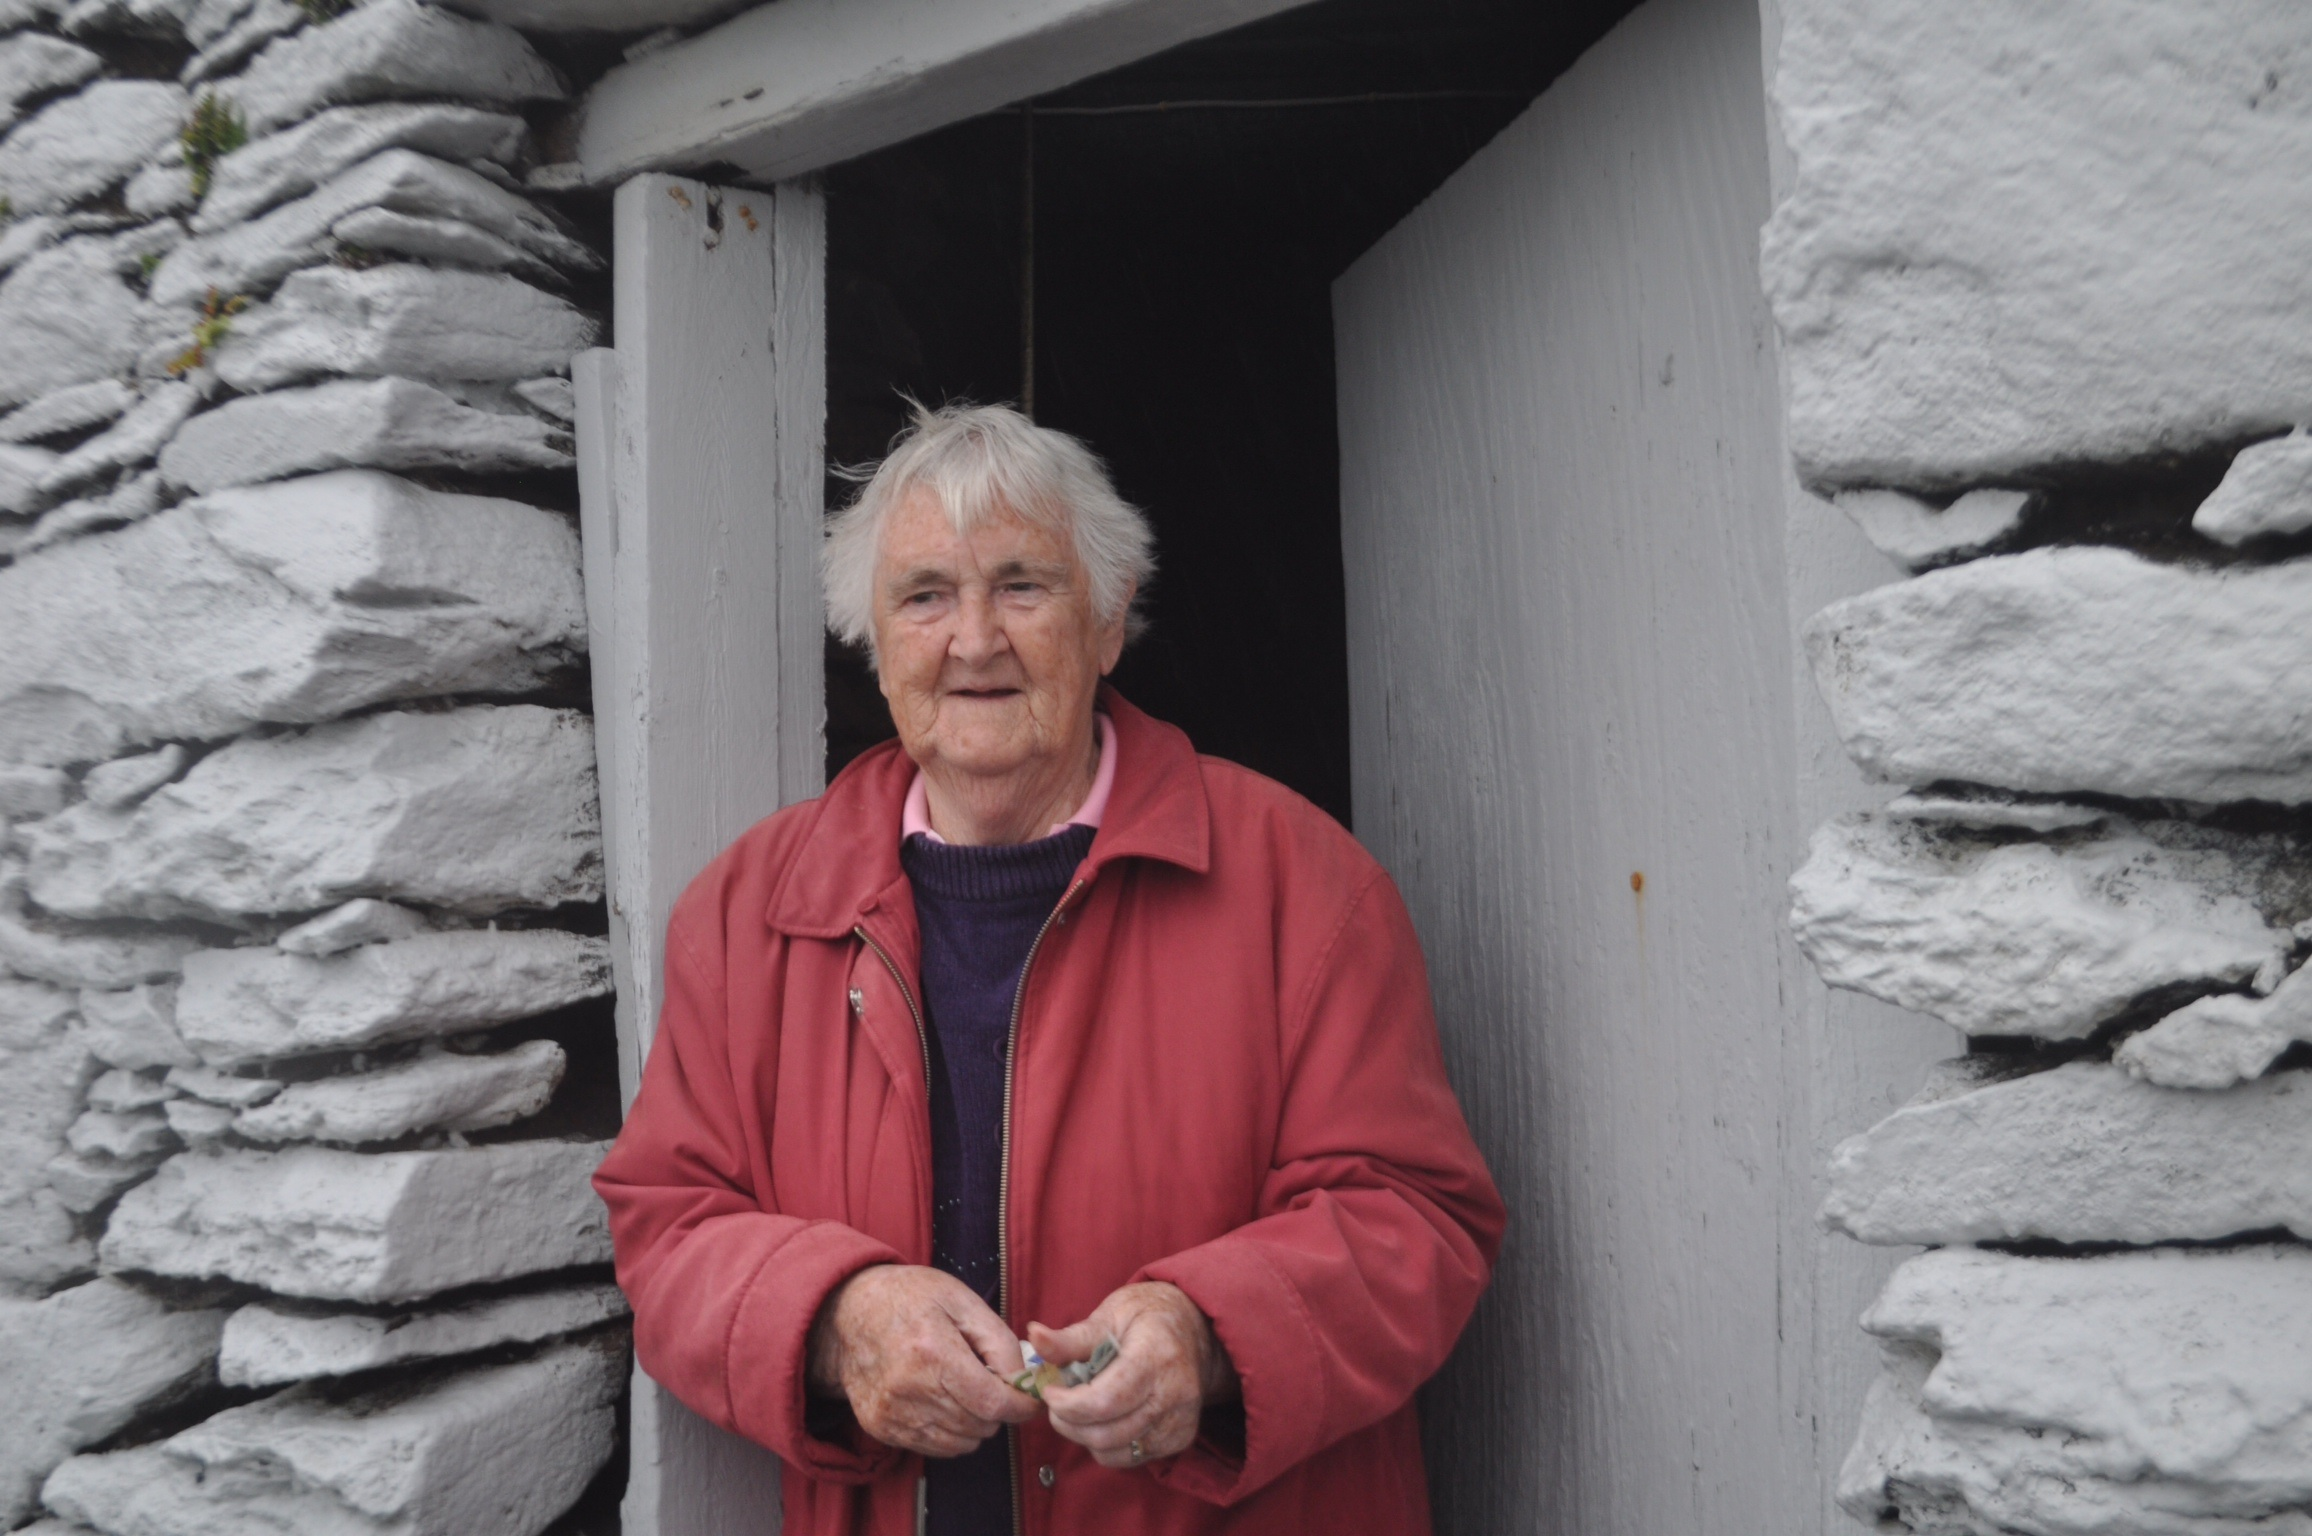 Mary, Keeper of the Fahan Beehive Huts, County Kerry, Ireland